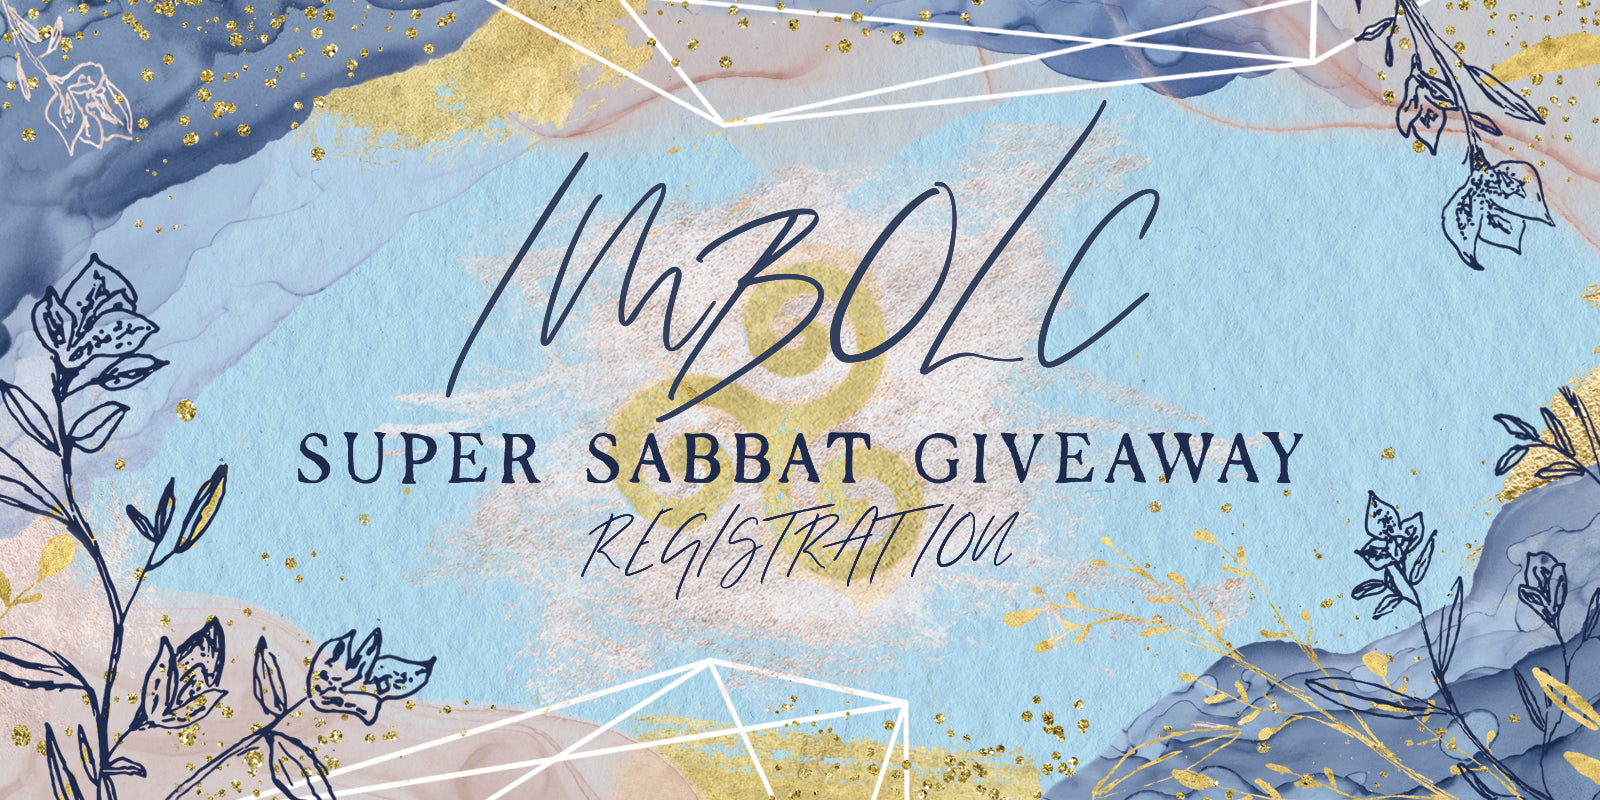 Imbolc 2019 • Super Sabbat Giveaway Registration